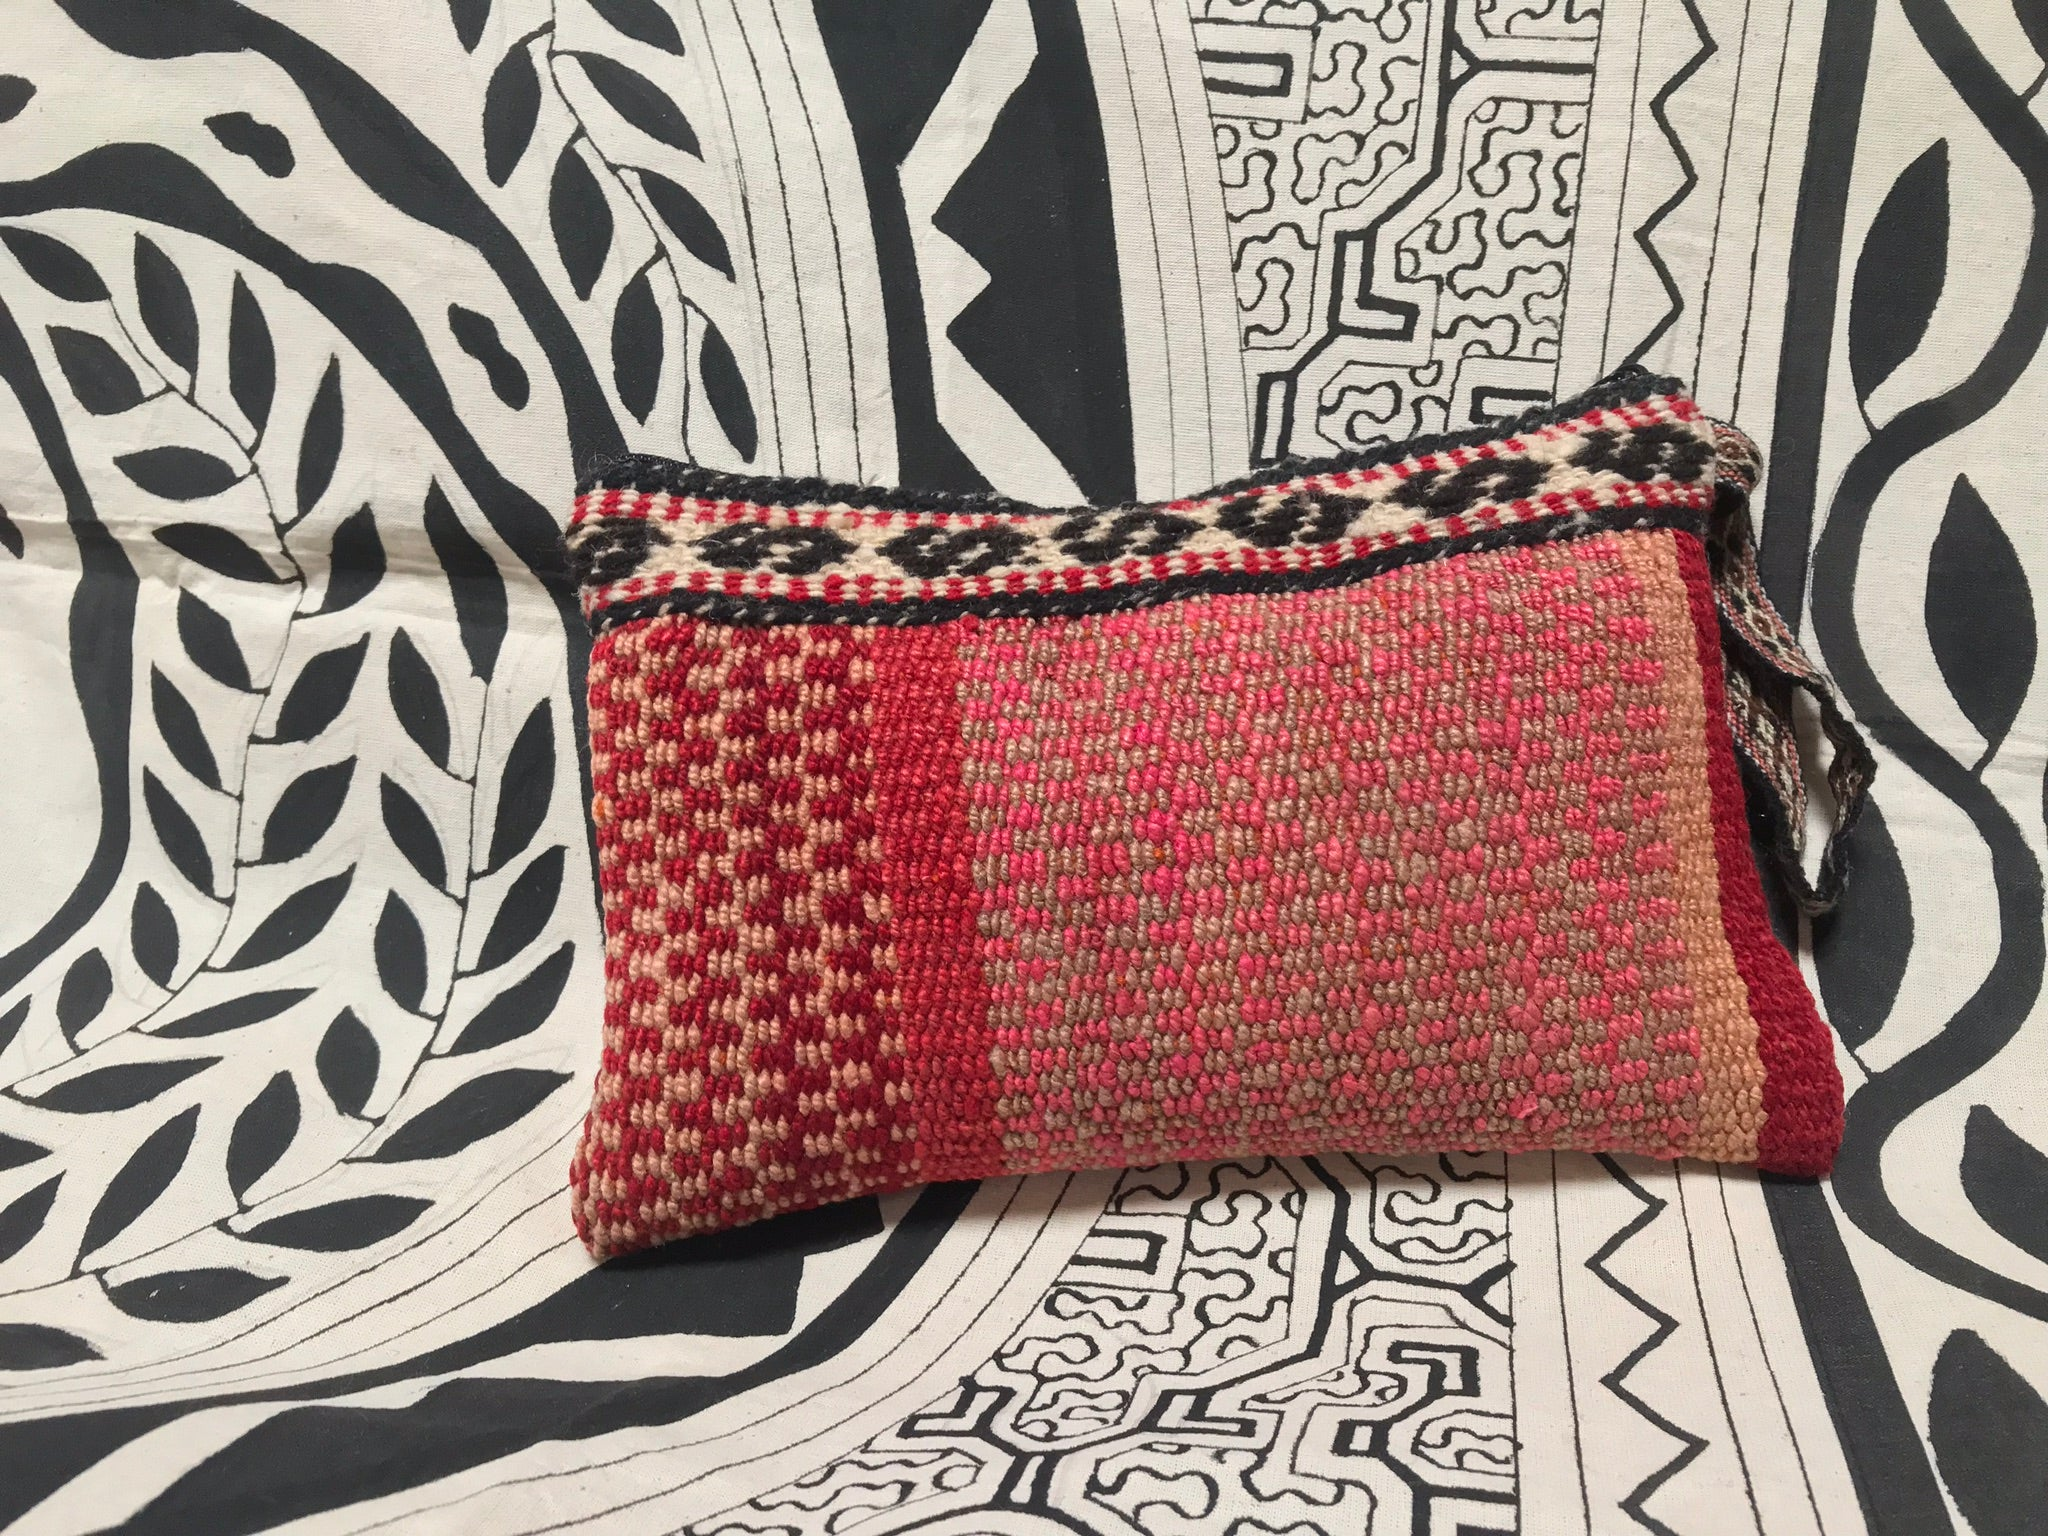 Medium Fair Trade Upcycled Andean Woven Pouch